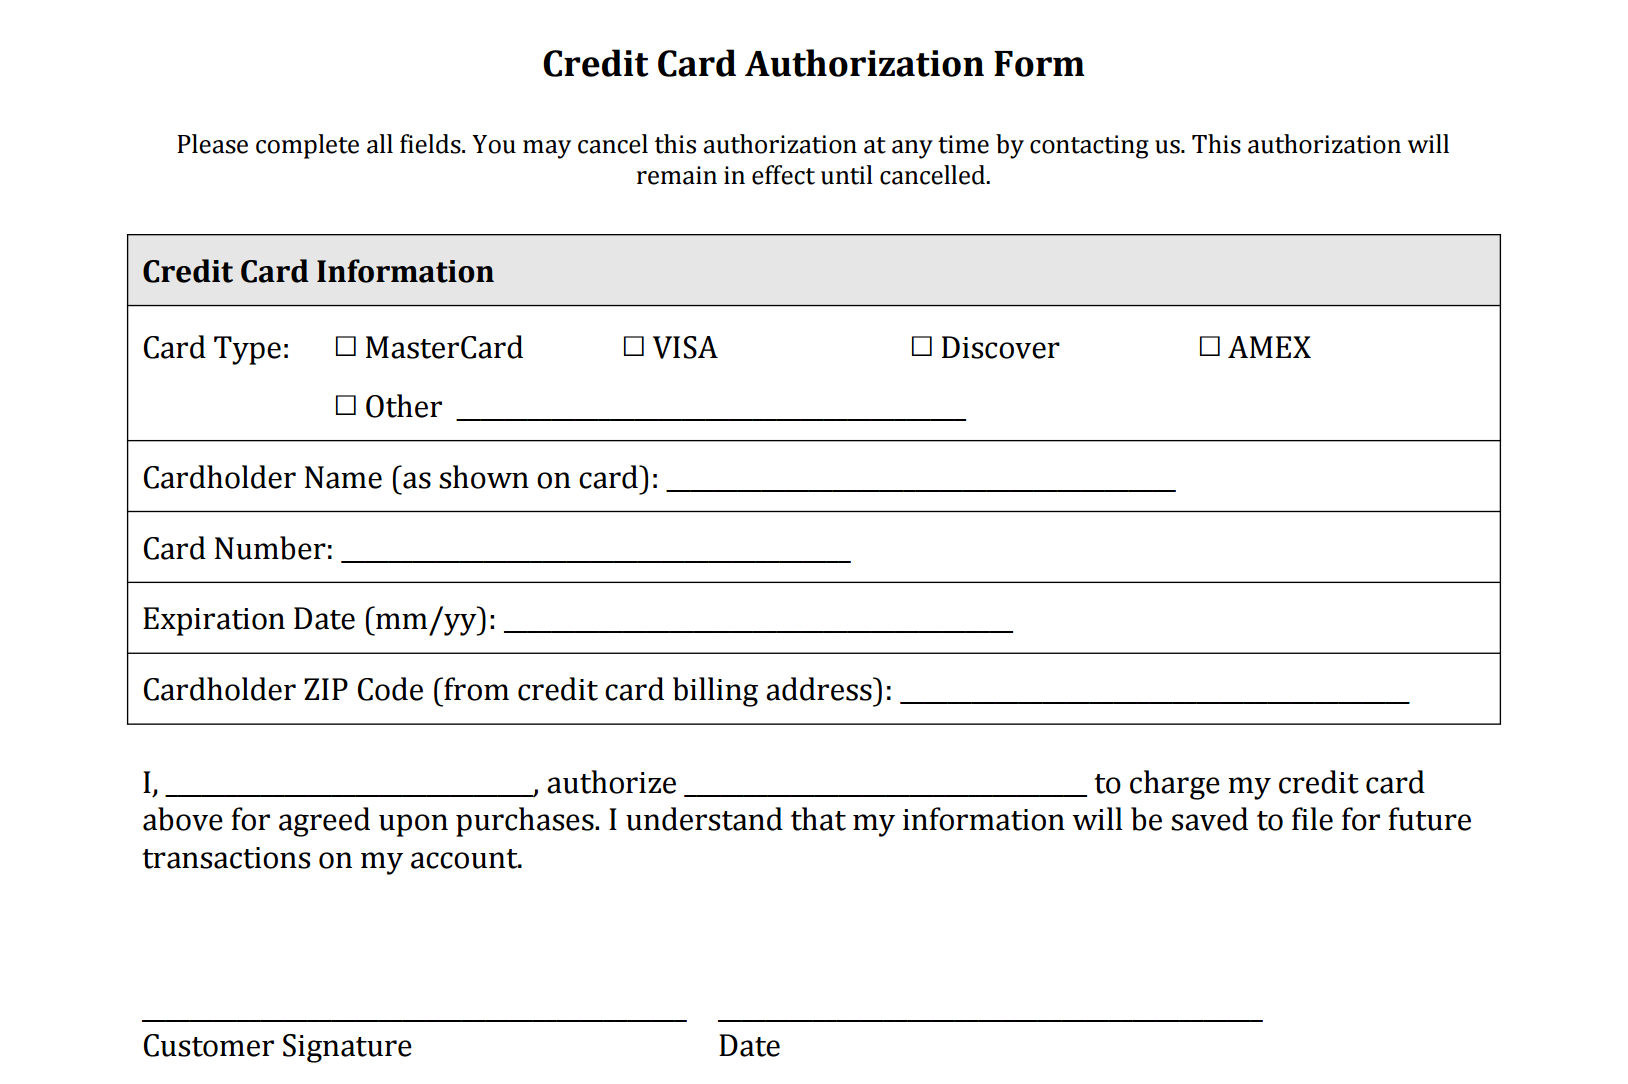 Credit Card Authorization Form Pdf | charlotte clergy coalition